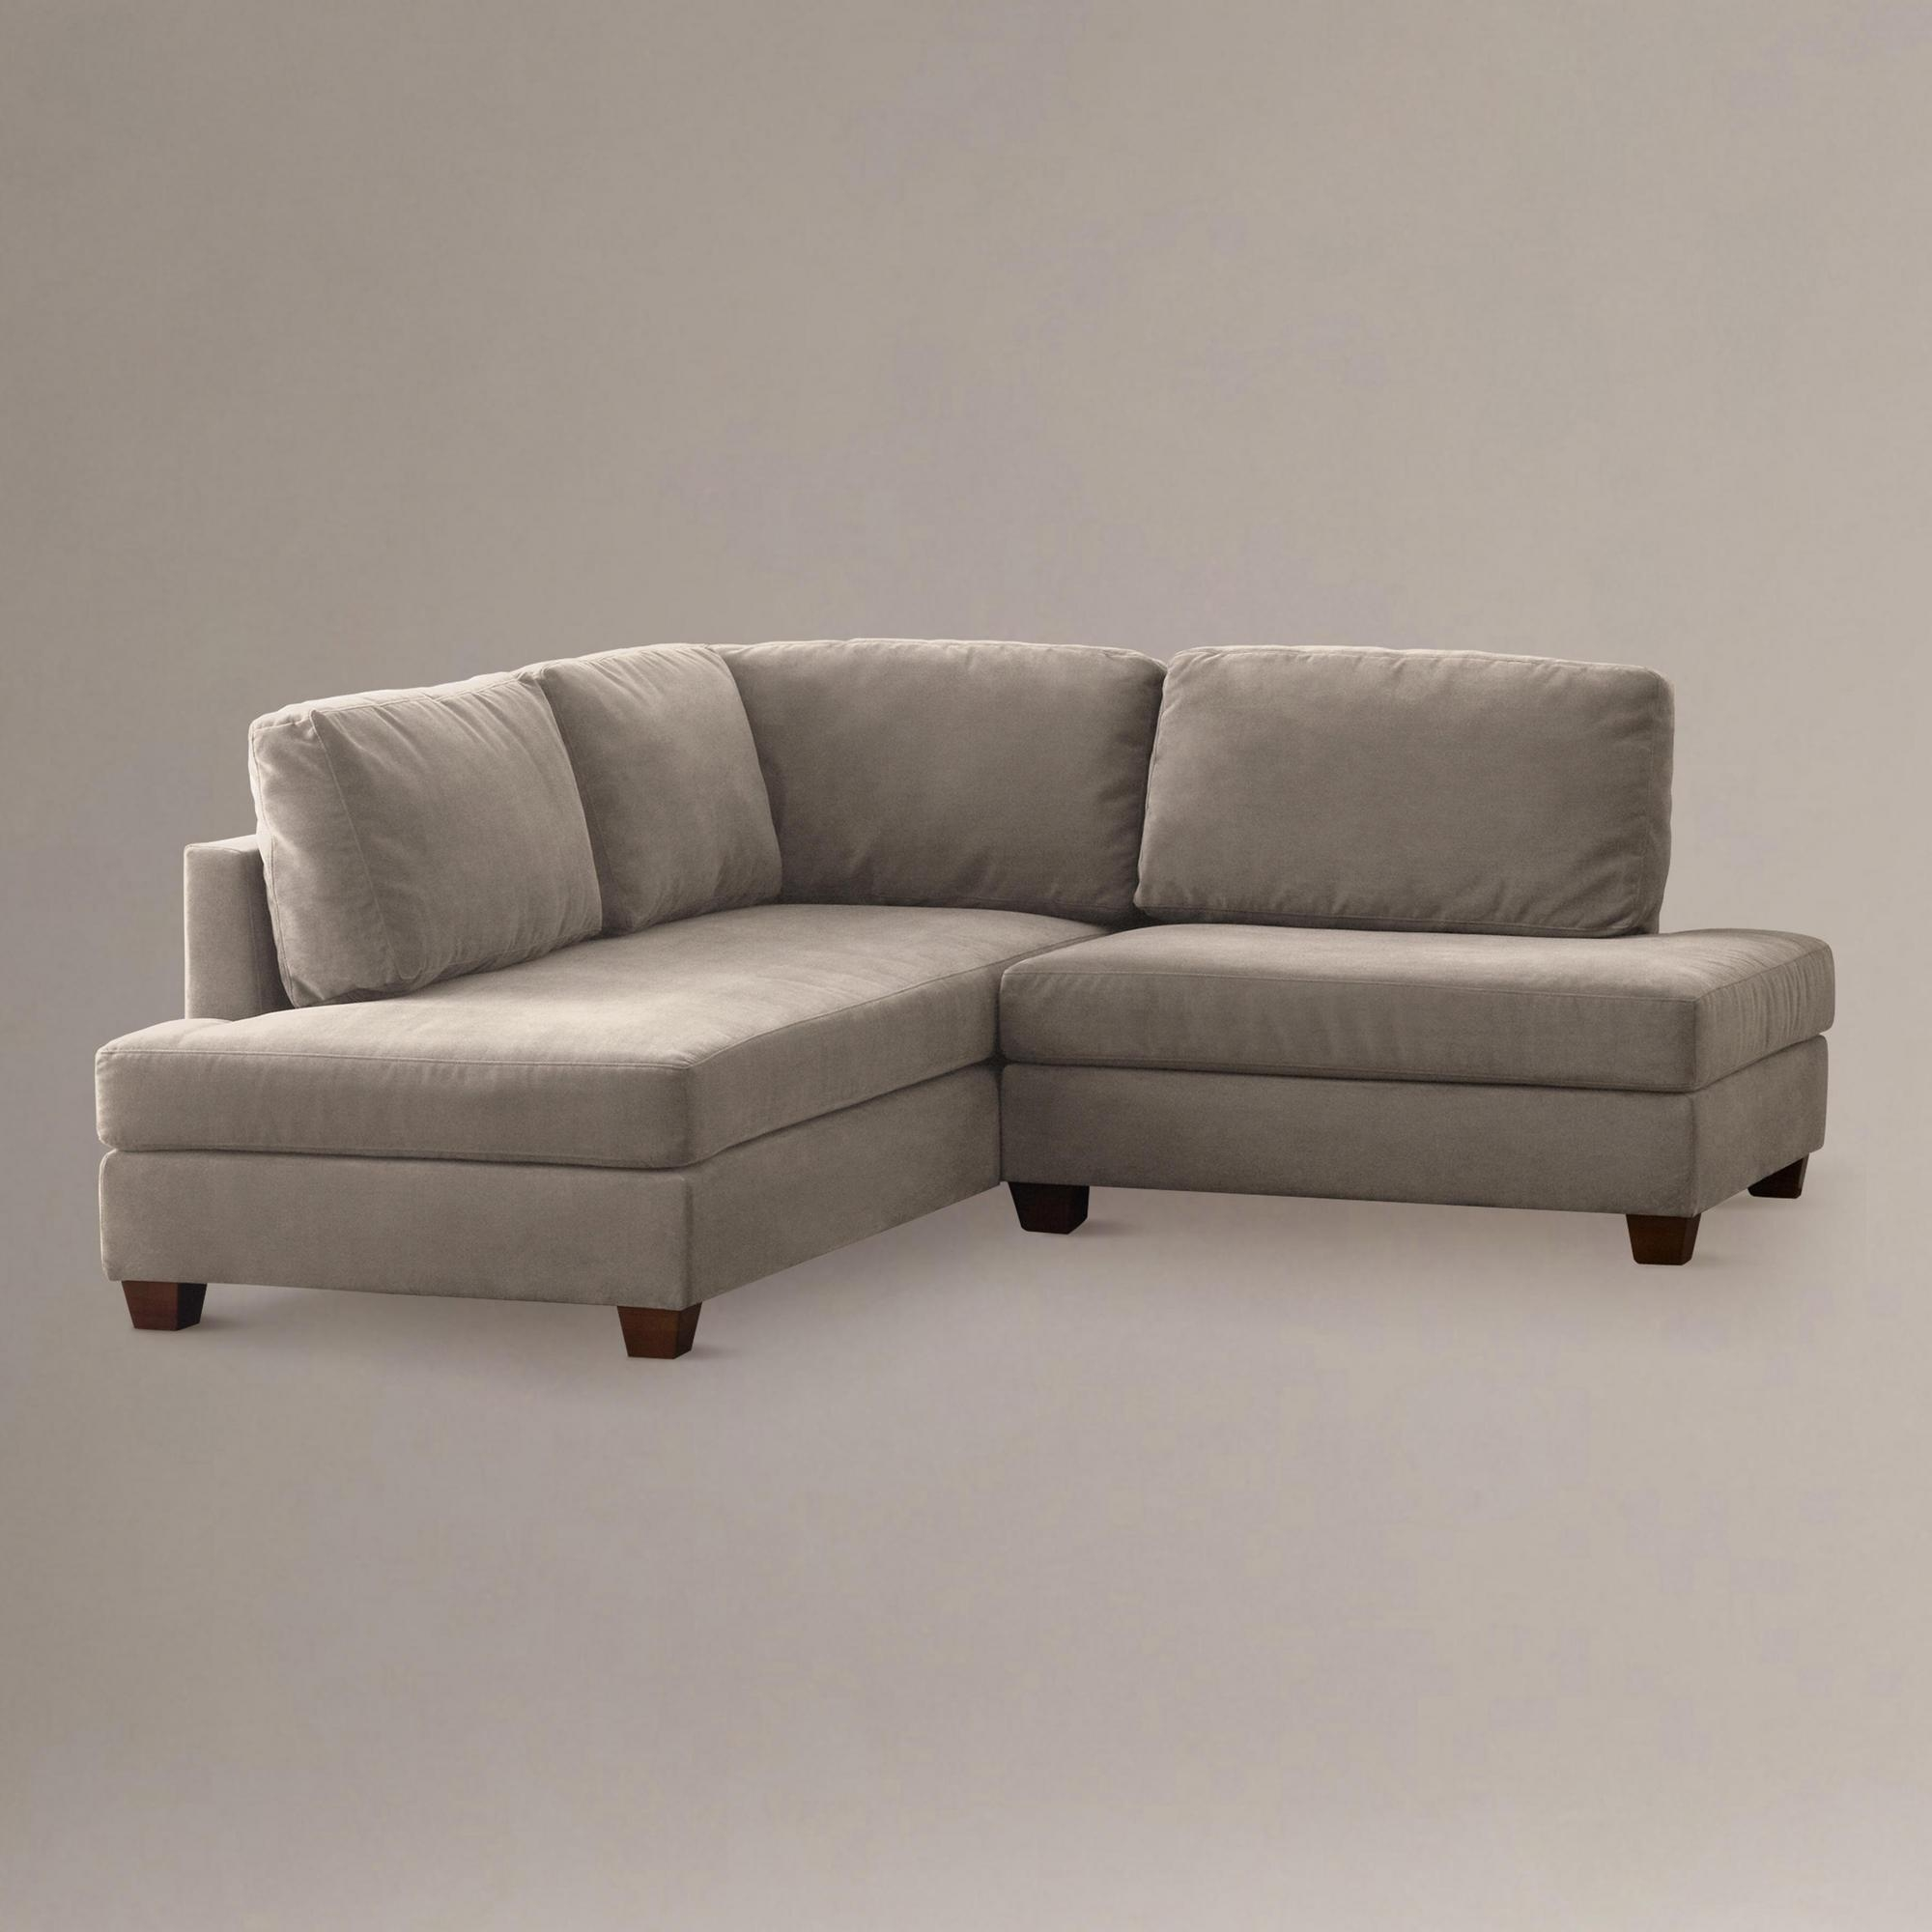 Sofas Winnipeg – Leather Sectional Sofa For Tiny Sofas (View 15 of 20)